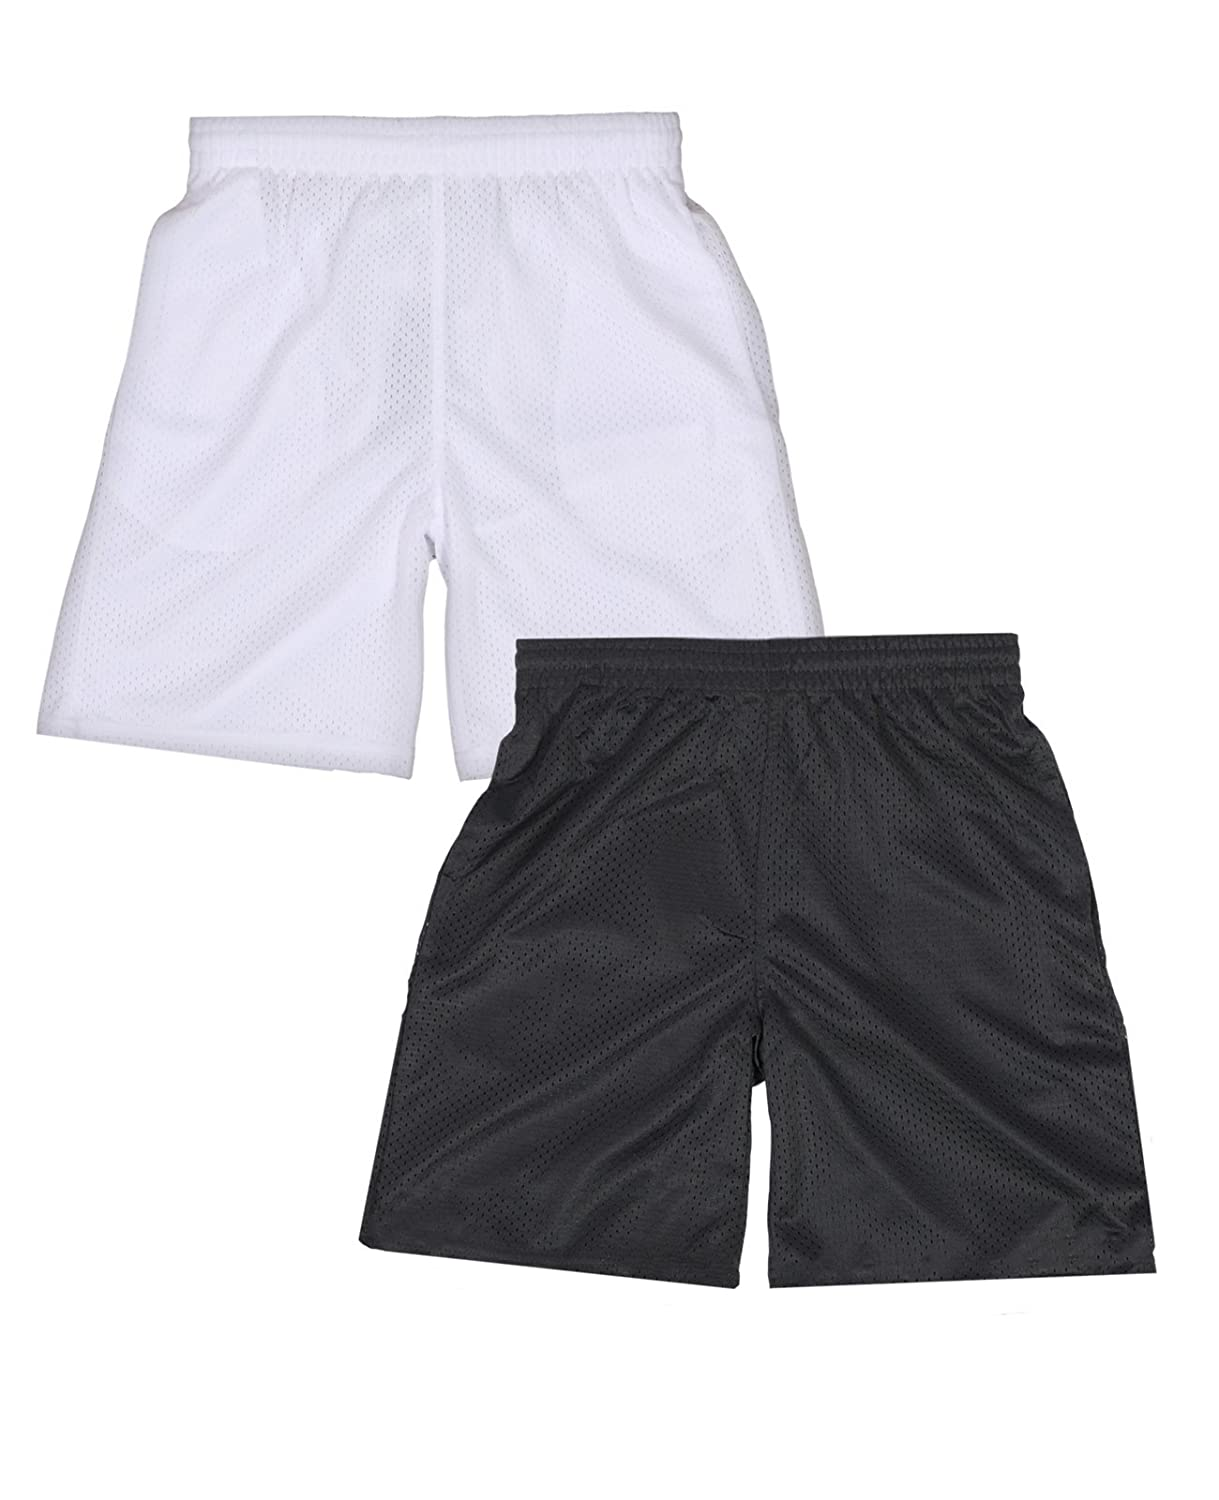 Galaxy by Harvic Boys Active Mesh Basketball Short (2 Pack)